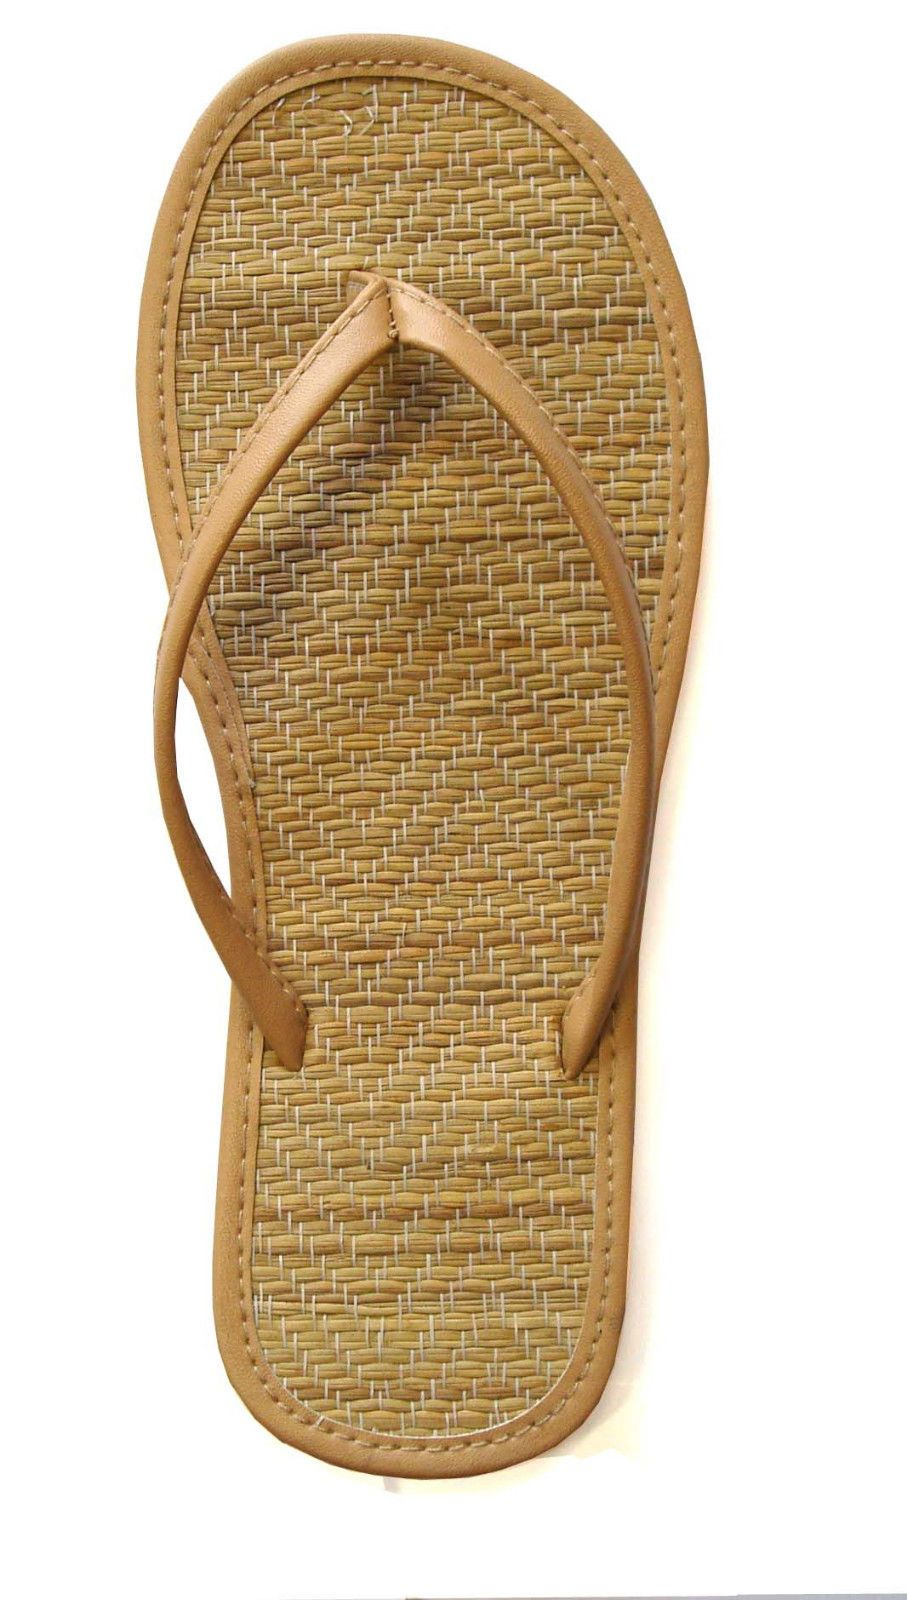 9c04f896dd90 New Women s Bamboo Flip Flop Sandals Beach Gym Pool Party Wedding ...